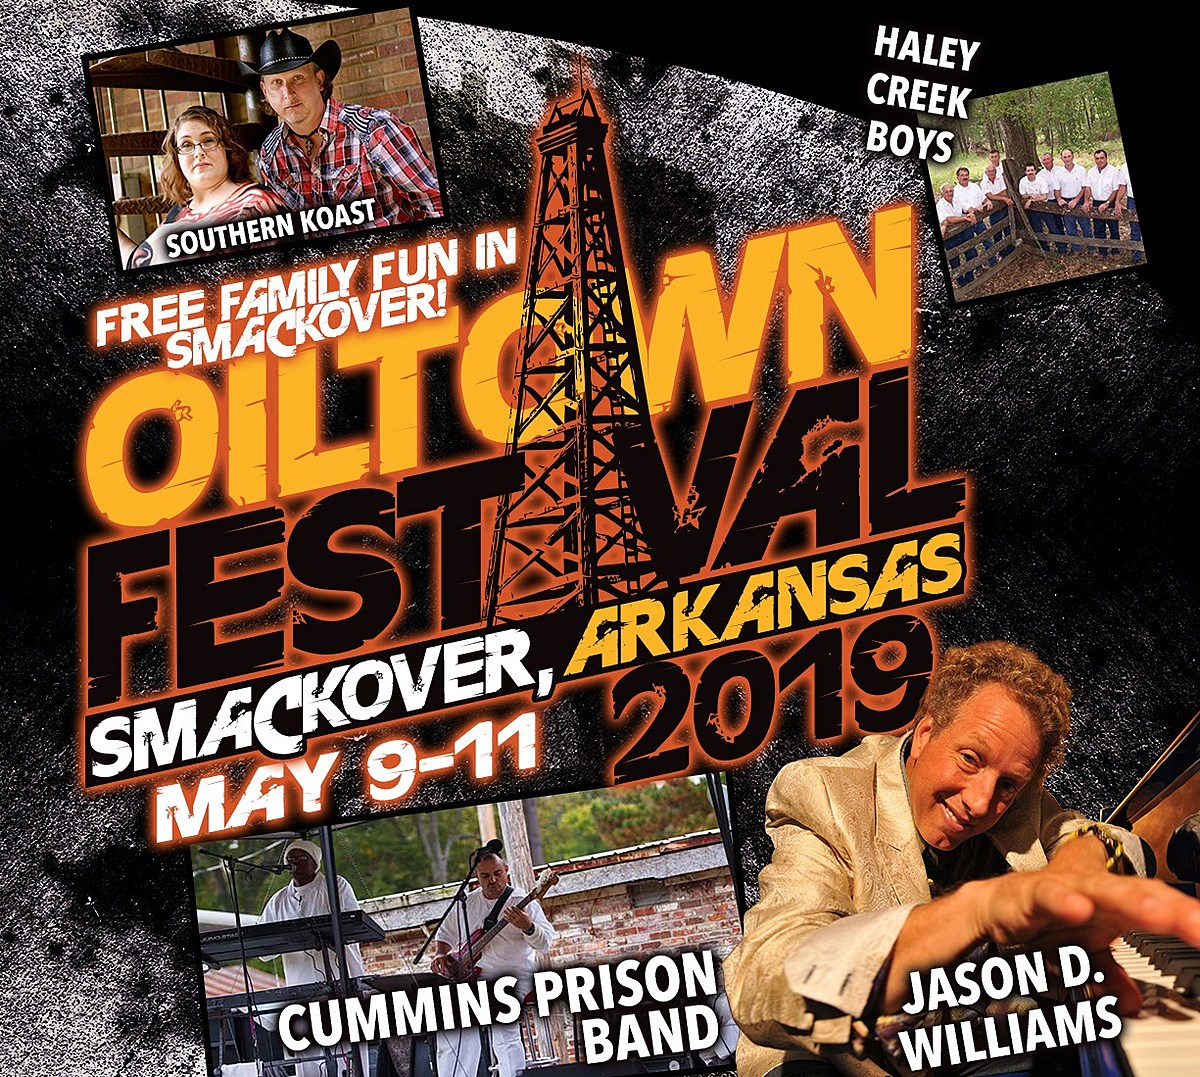 Smackover 'Oil Town Festival' Is This Weekend